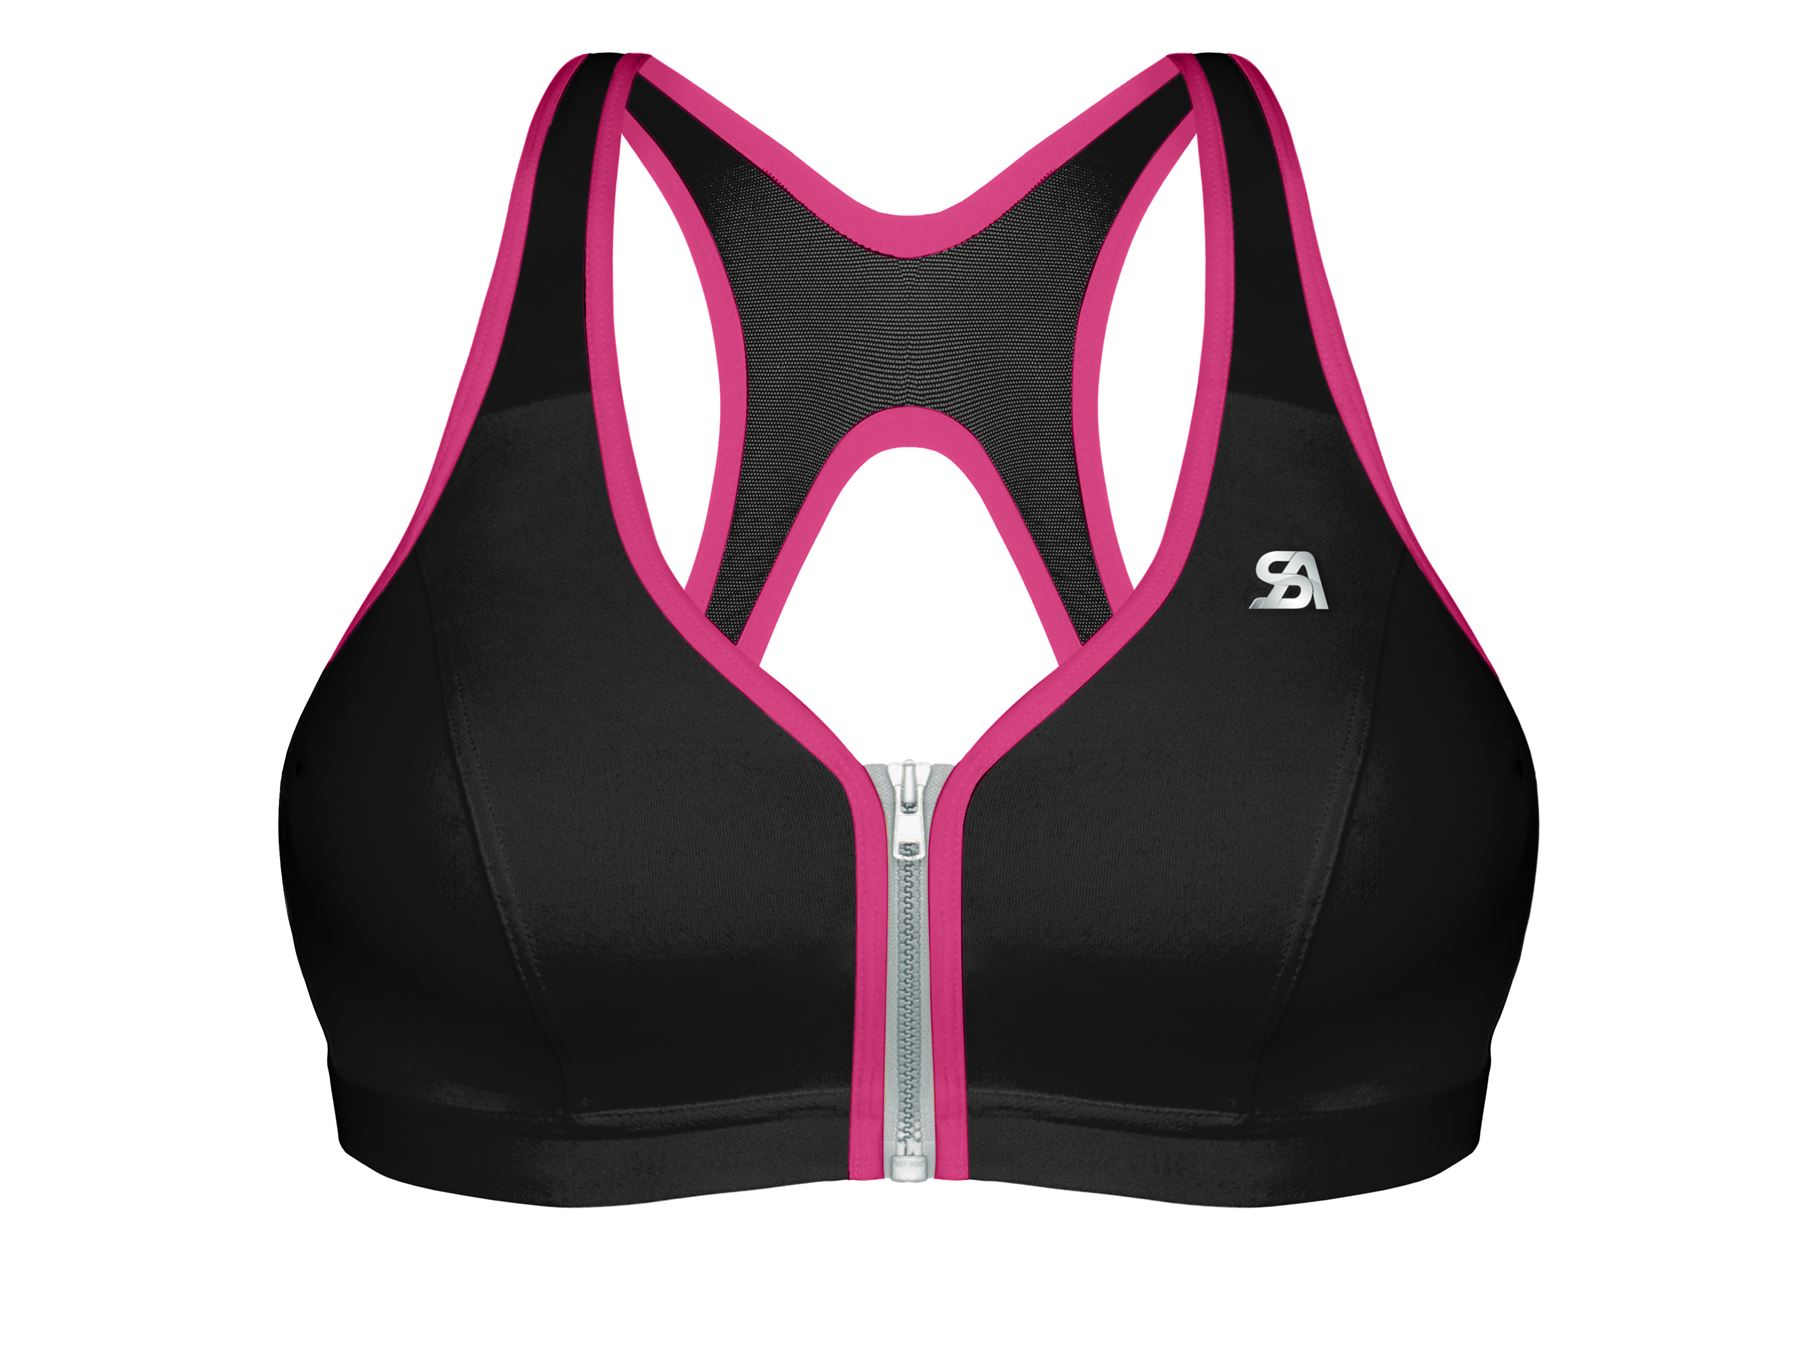 Women's Sports Bras. Activewear Workout Tops Workout Bottoms Sports Bras Sweatshirts Hoodies MORE + (9) Women's New Balance WB Power Sports Bra - Black Sports Bras $ at shoes. Orange/Pink Sports Bras shoes $ $ Kathy.